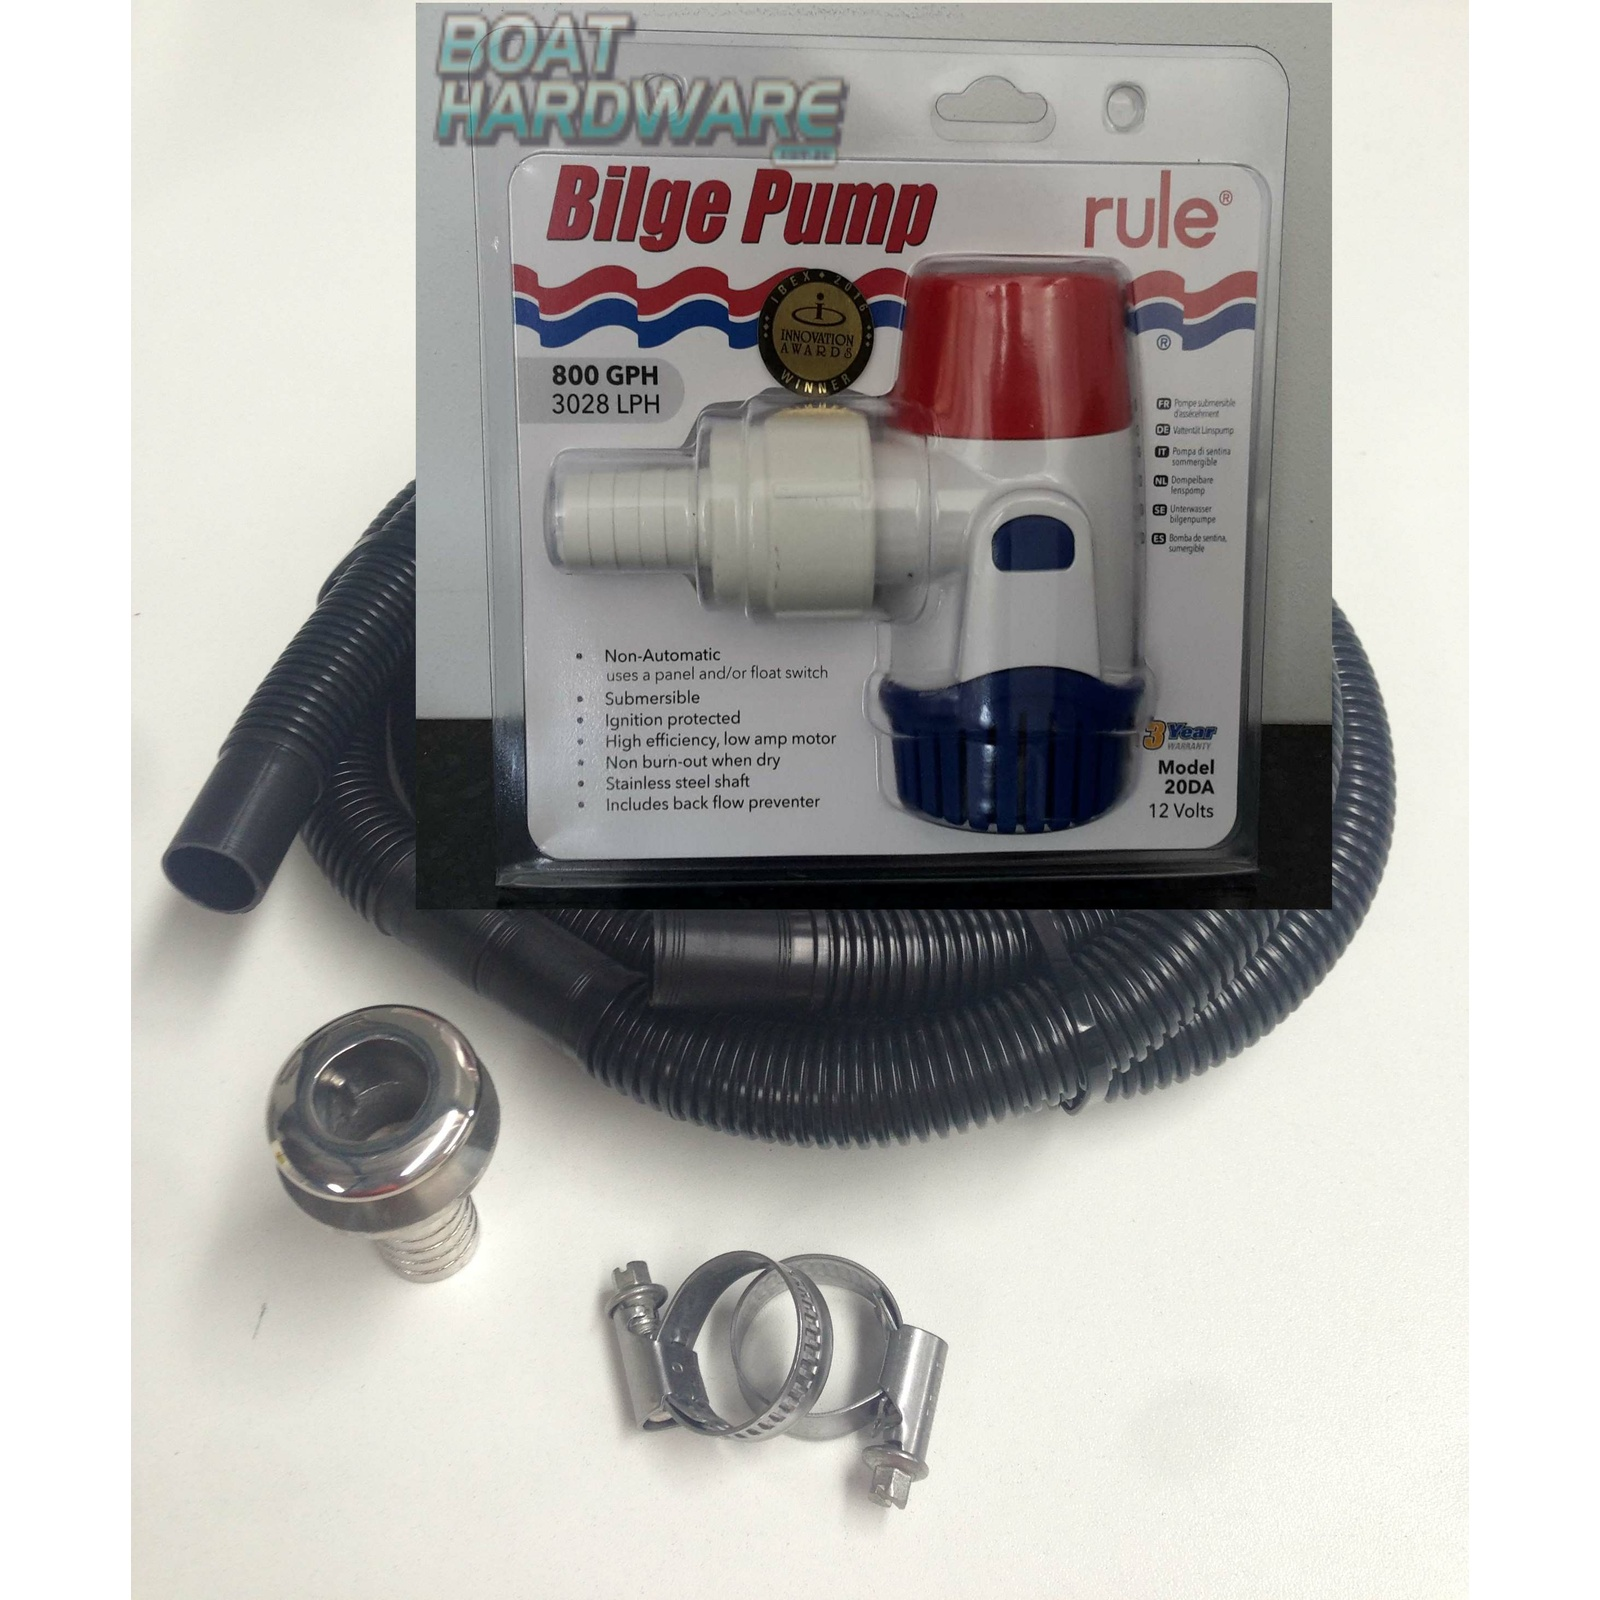 Electric Bilge Pump 800GPM KIT incl Hose & Fittings